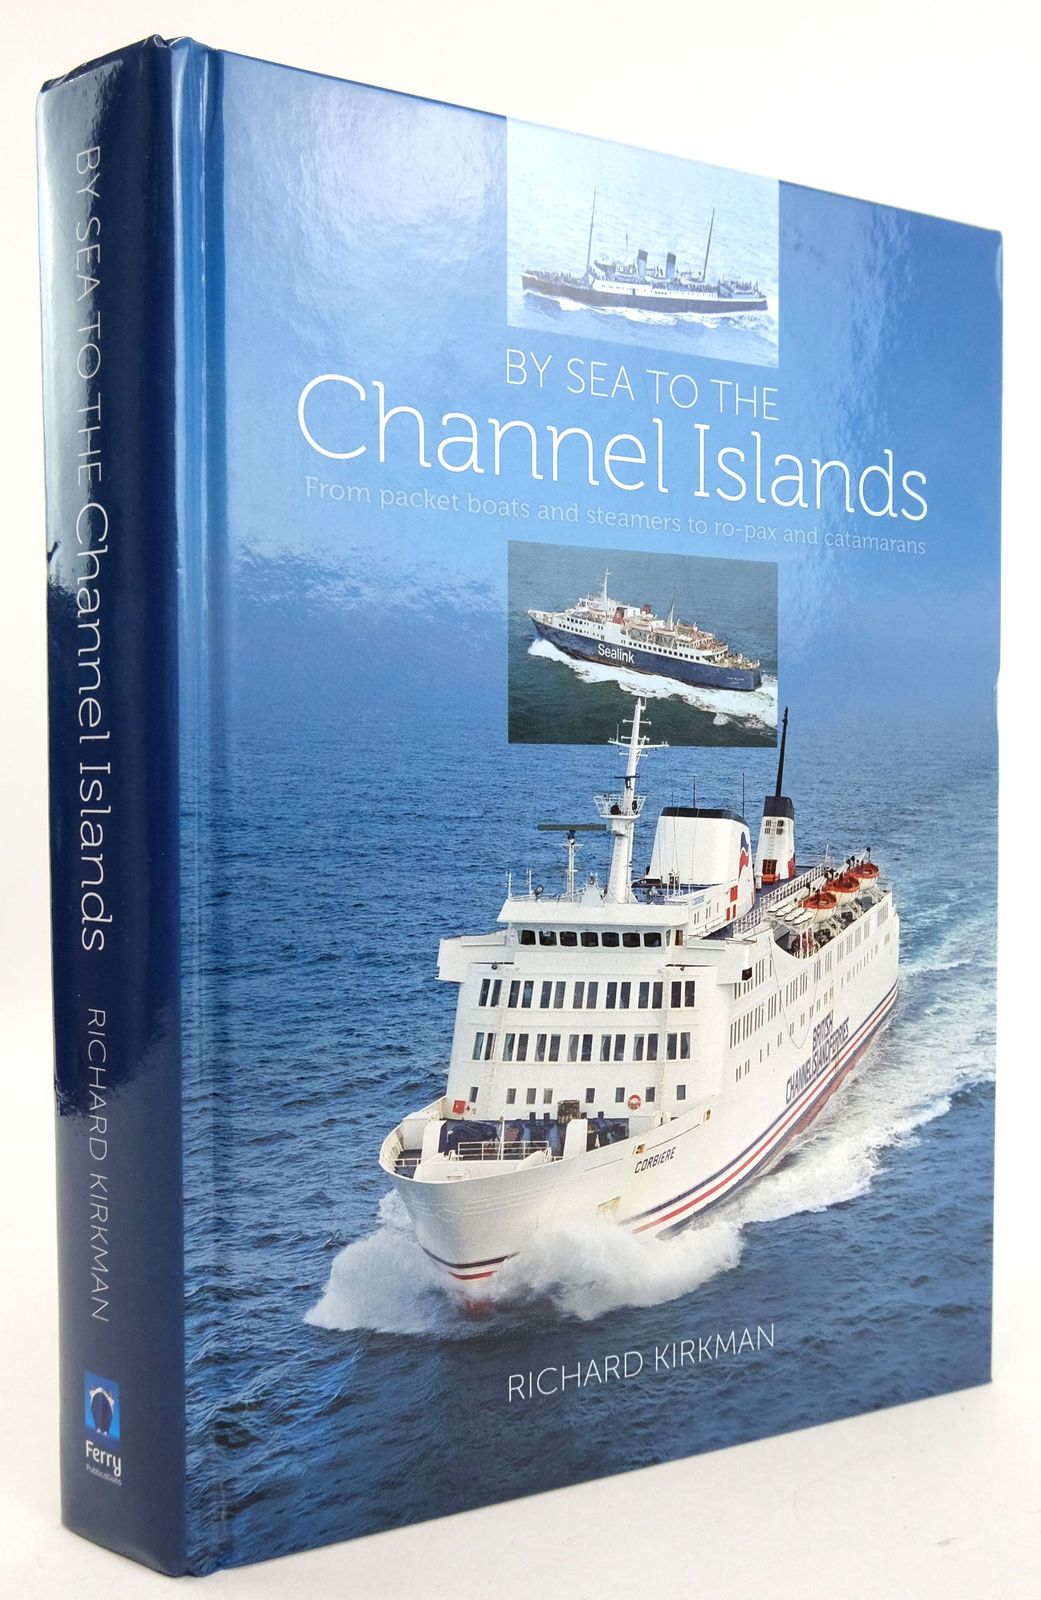 Photo of BY SEA TO THE CHANNEL ISLANDS: FROM PACKET BOATS AND STEAMERS TO RO-PAX AND CATAMARANS written by Kirkman, Richard published by Ferry Publications (STOCK CODE: 1819746)  for sale by Stella & Rose's Books